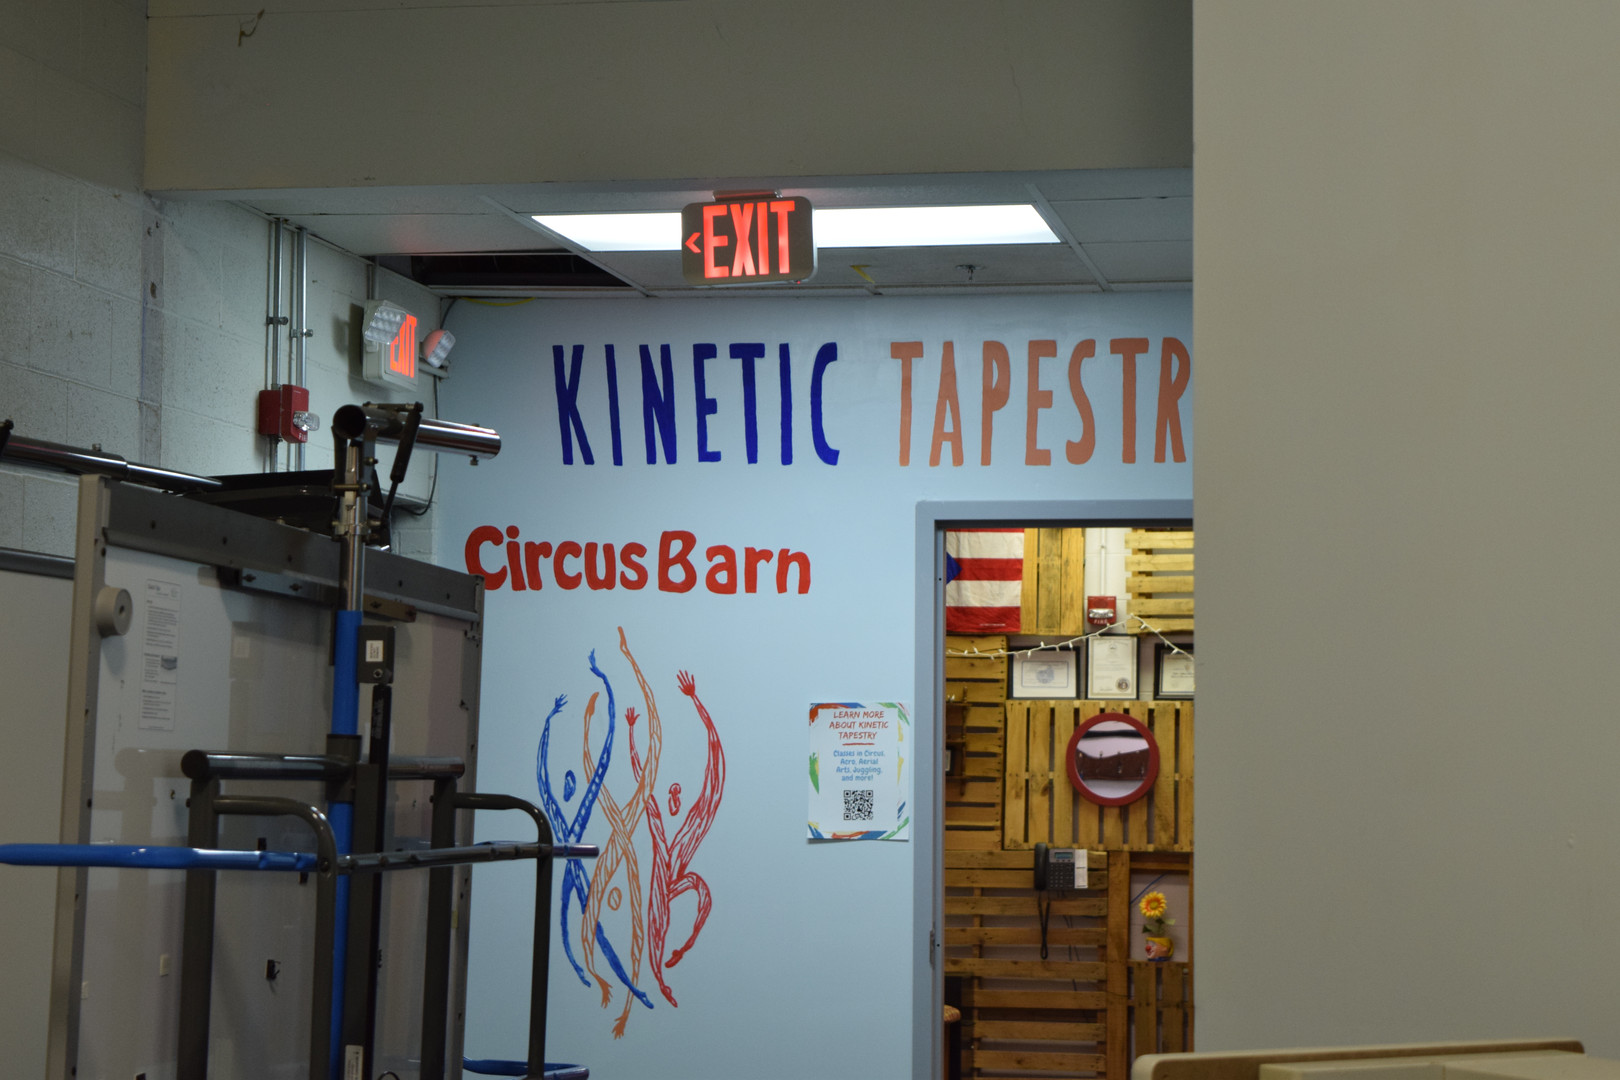 Expanded Kinetic Tapestry